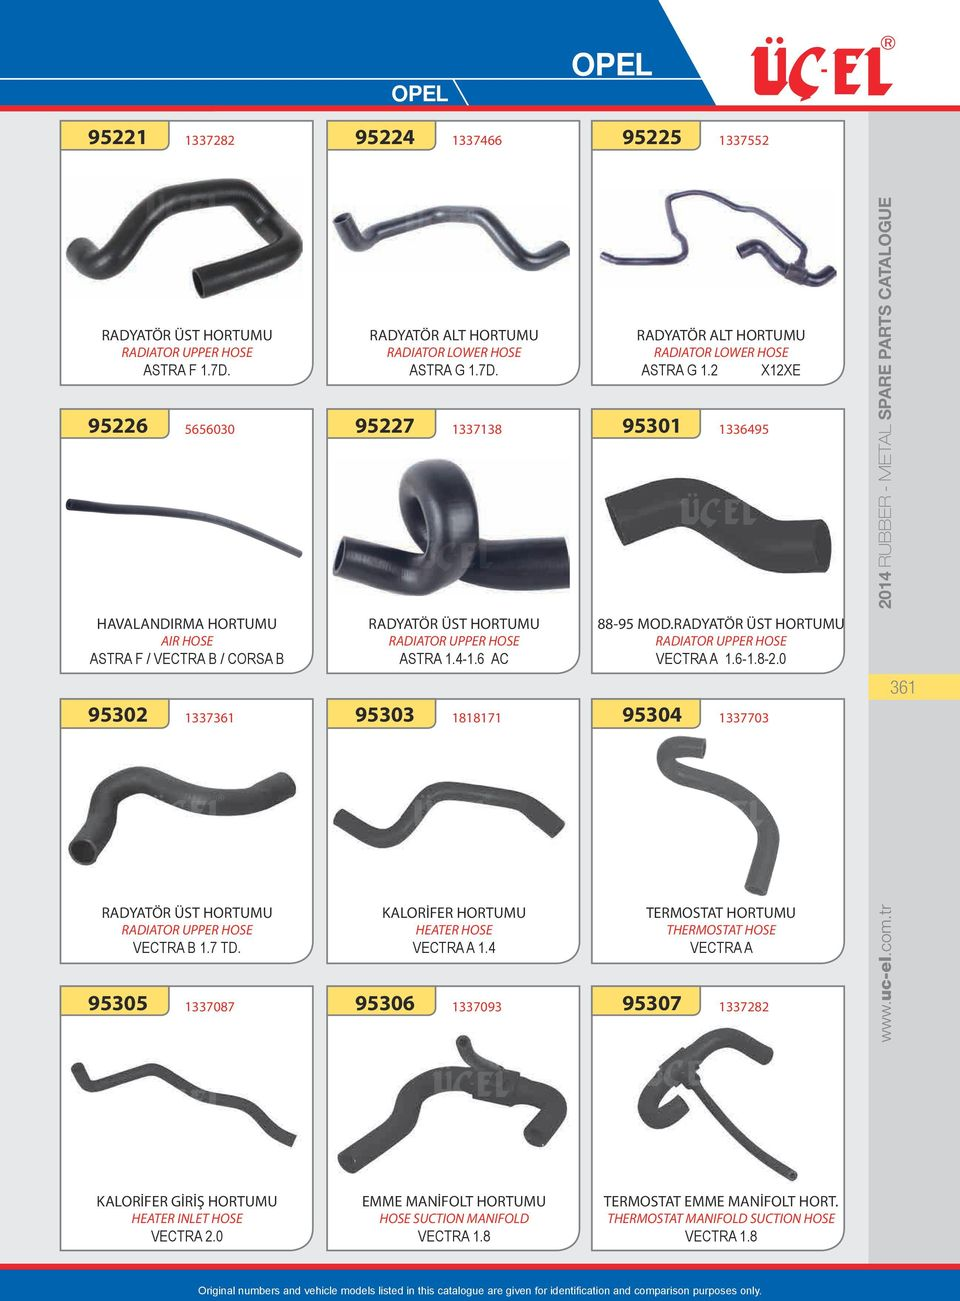 0 1337703 TERMOSTAT HORTUMU THERMOSTAT HOSE VECTRA A 1337282 www.uc-el.com.tr 2014 RUBBER - METAL SPARE PARTS CATALOGUE 361 KALORİFER GİRİŞ HORTUMU HEATER INLET HOSE VECTRA 2.